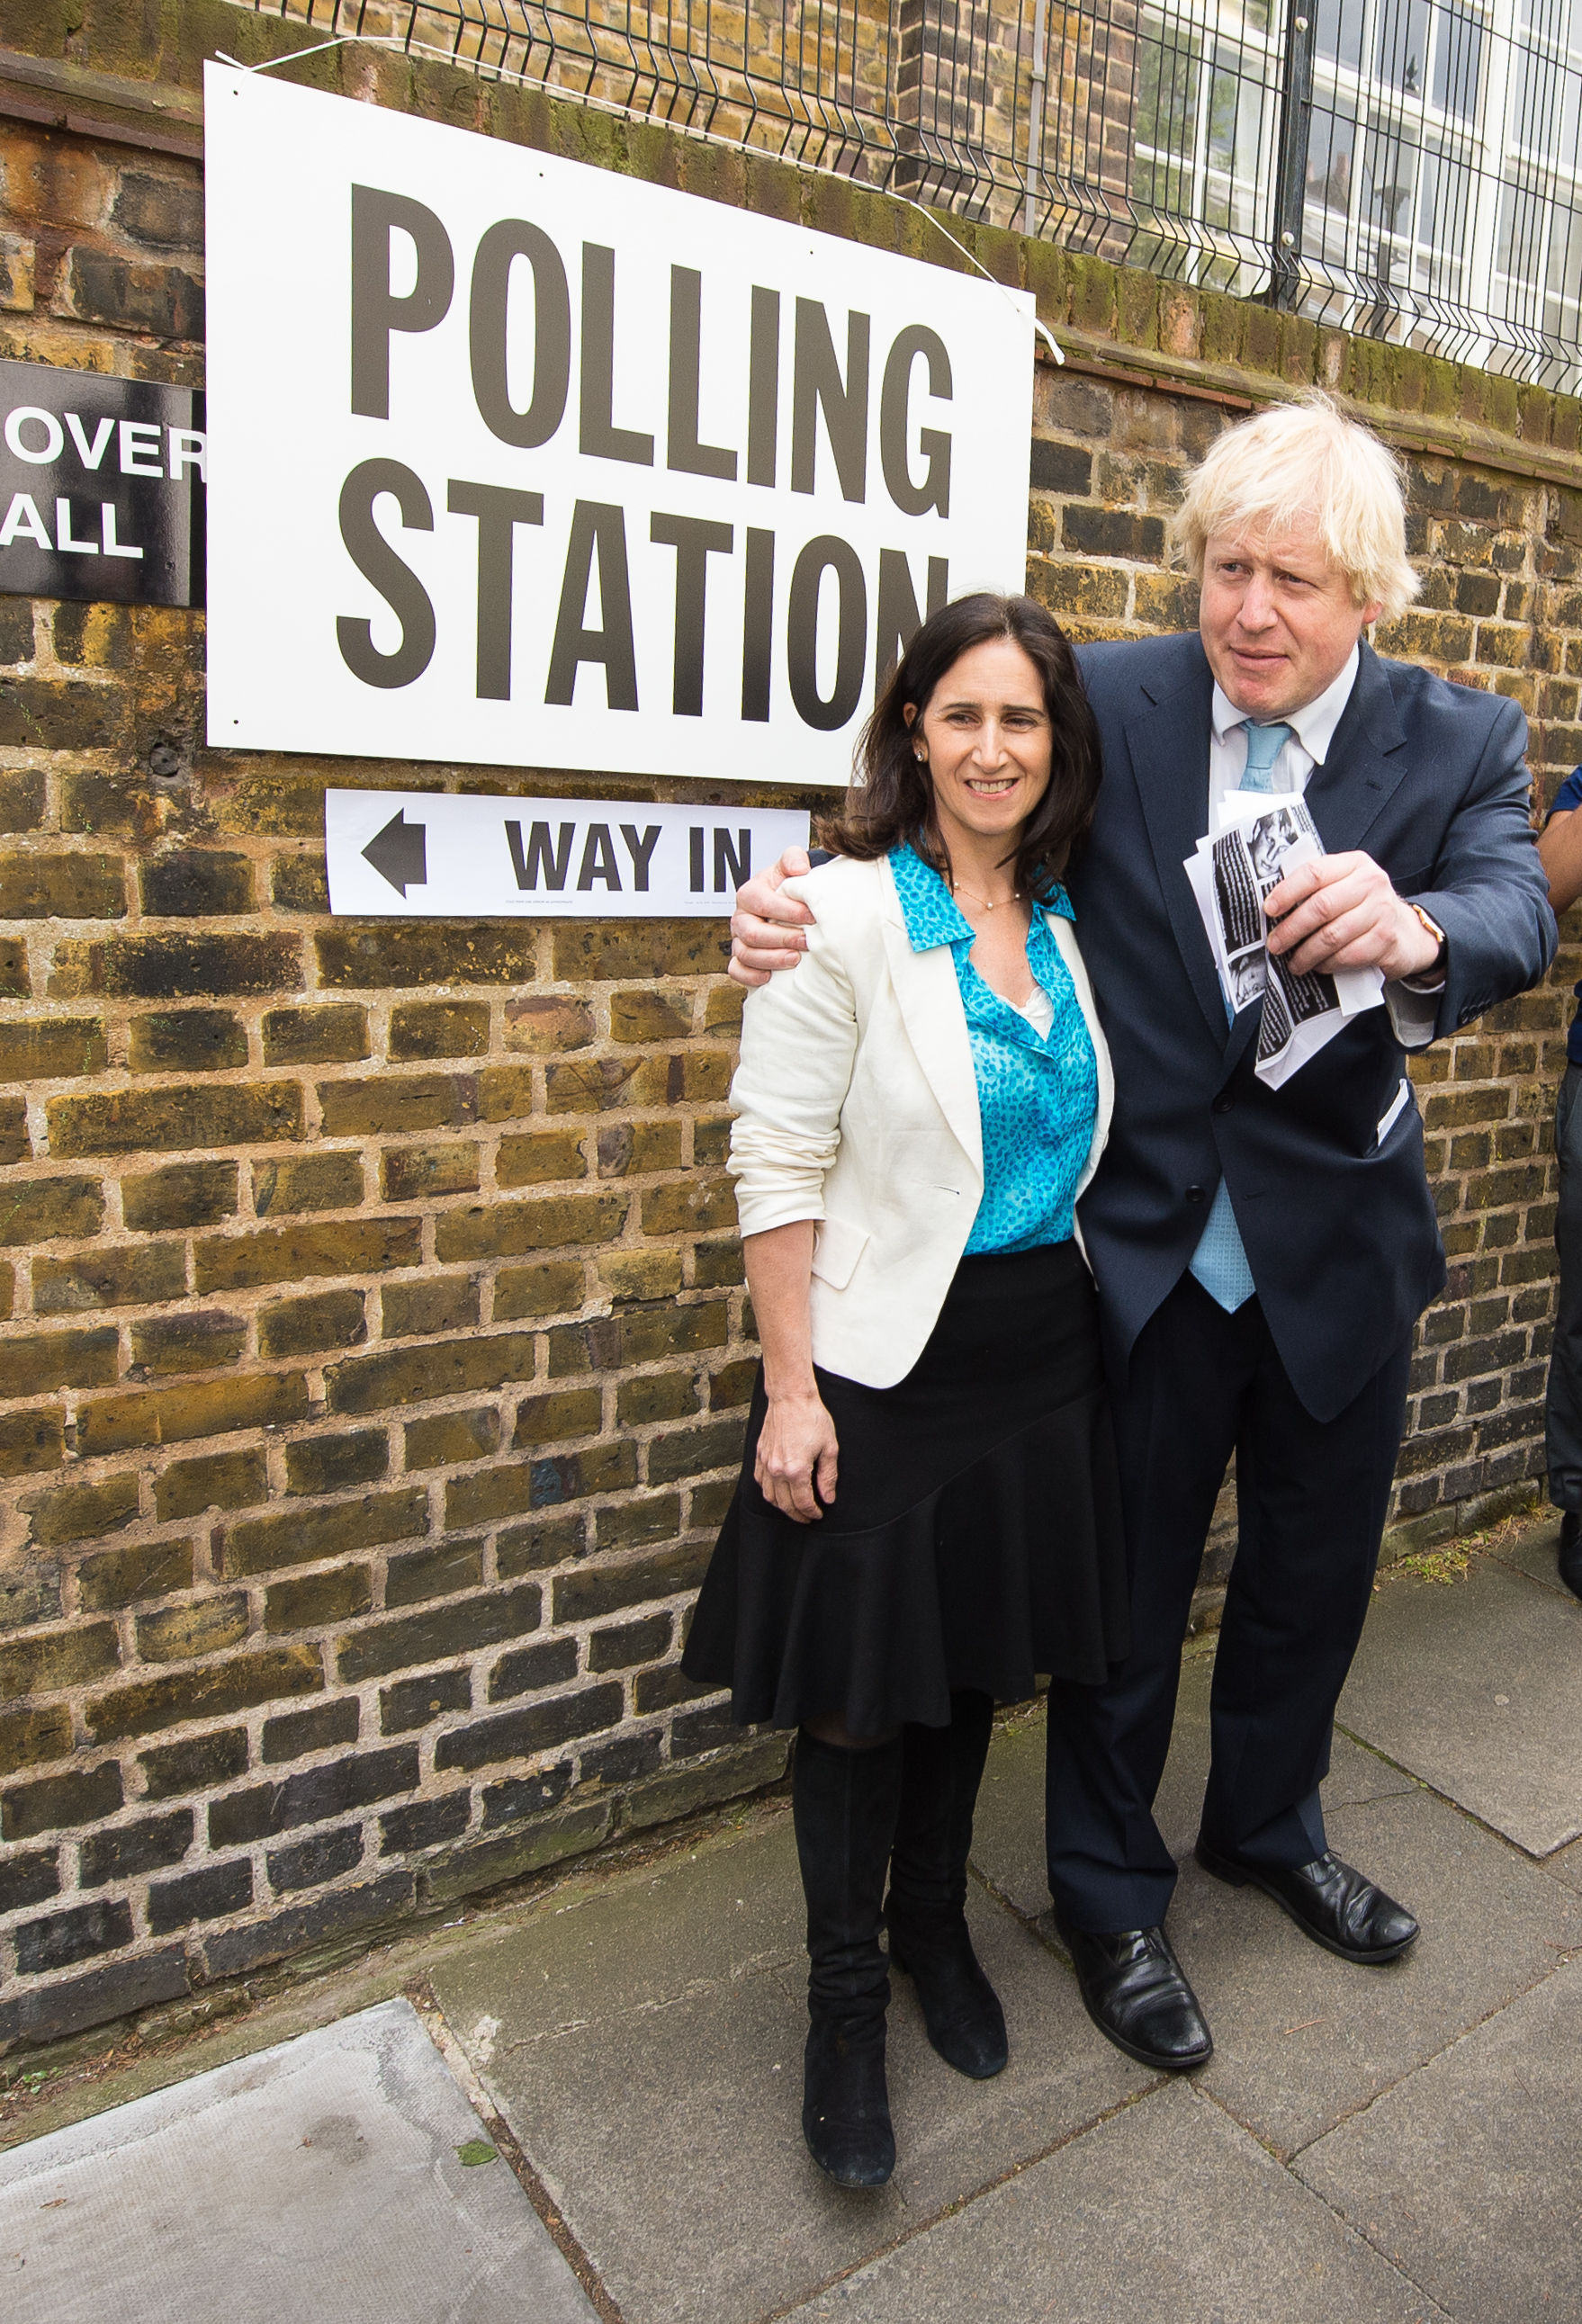 Boris Johnson and his wife Marina Wheeler leave a polling station in Islington, north London, after voting the in the General Election 2015.